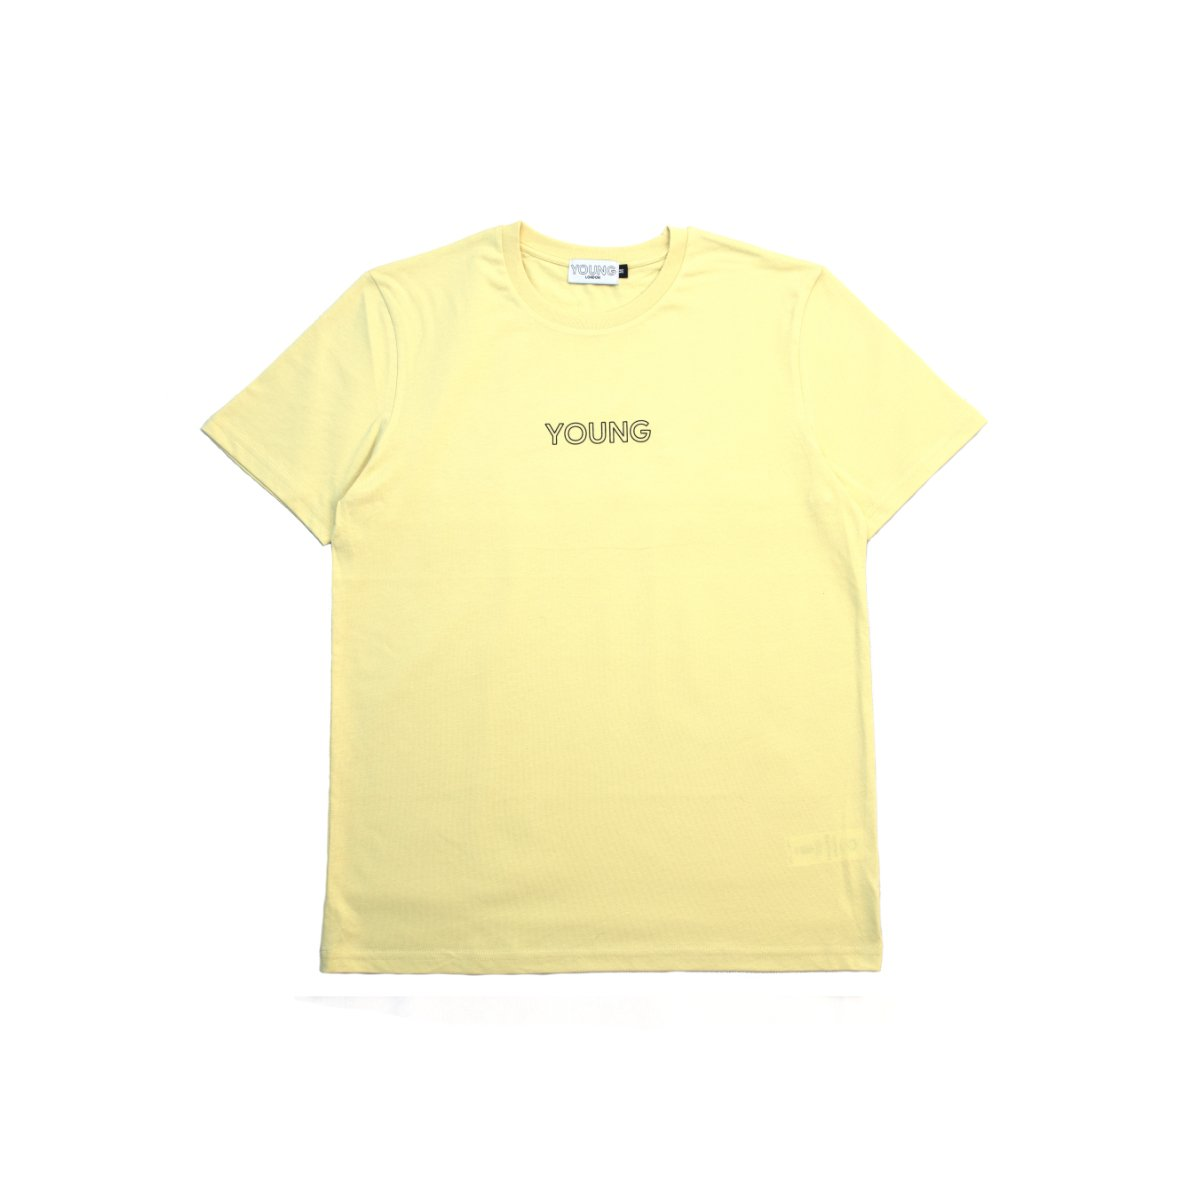 Young Hollow Tee - Misty Yellow